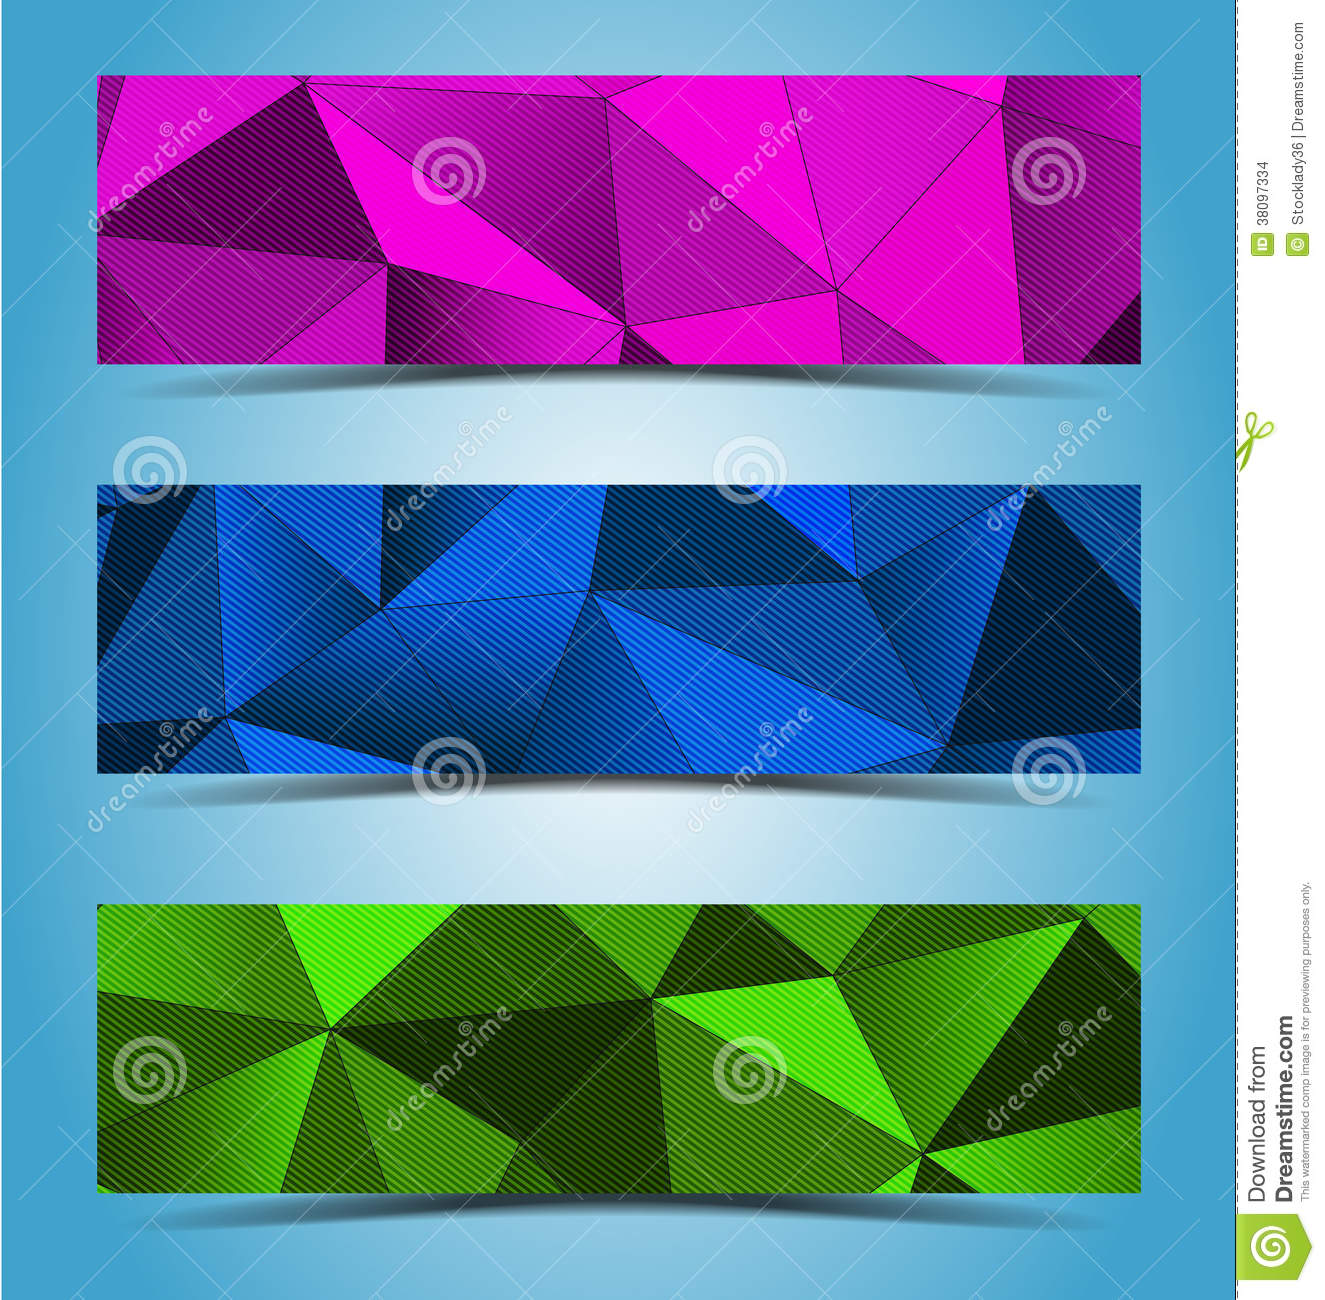 Abstract geometric banner design